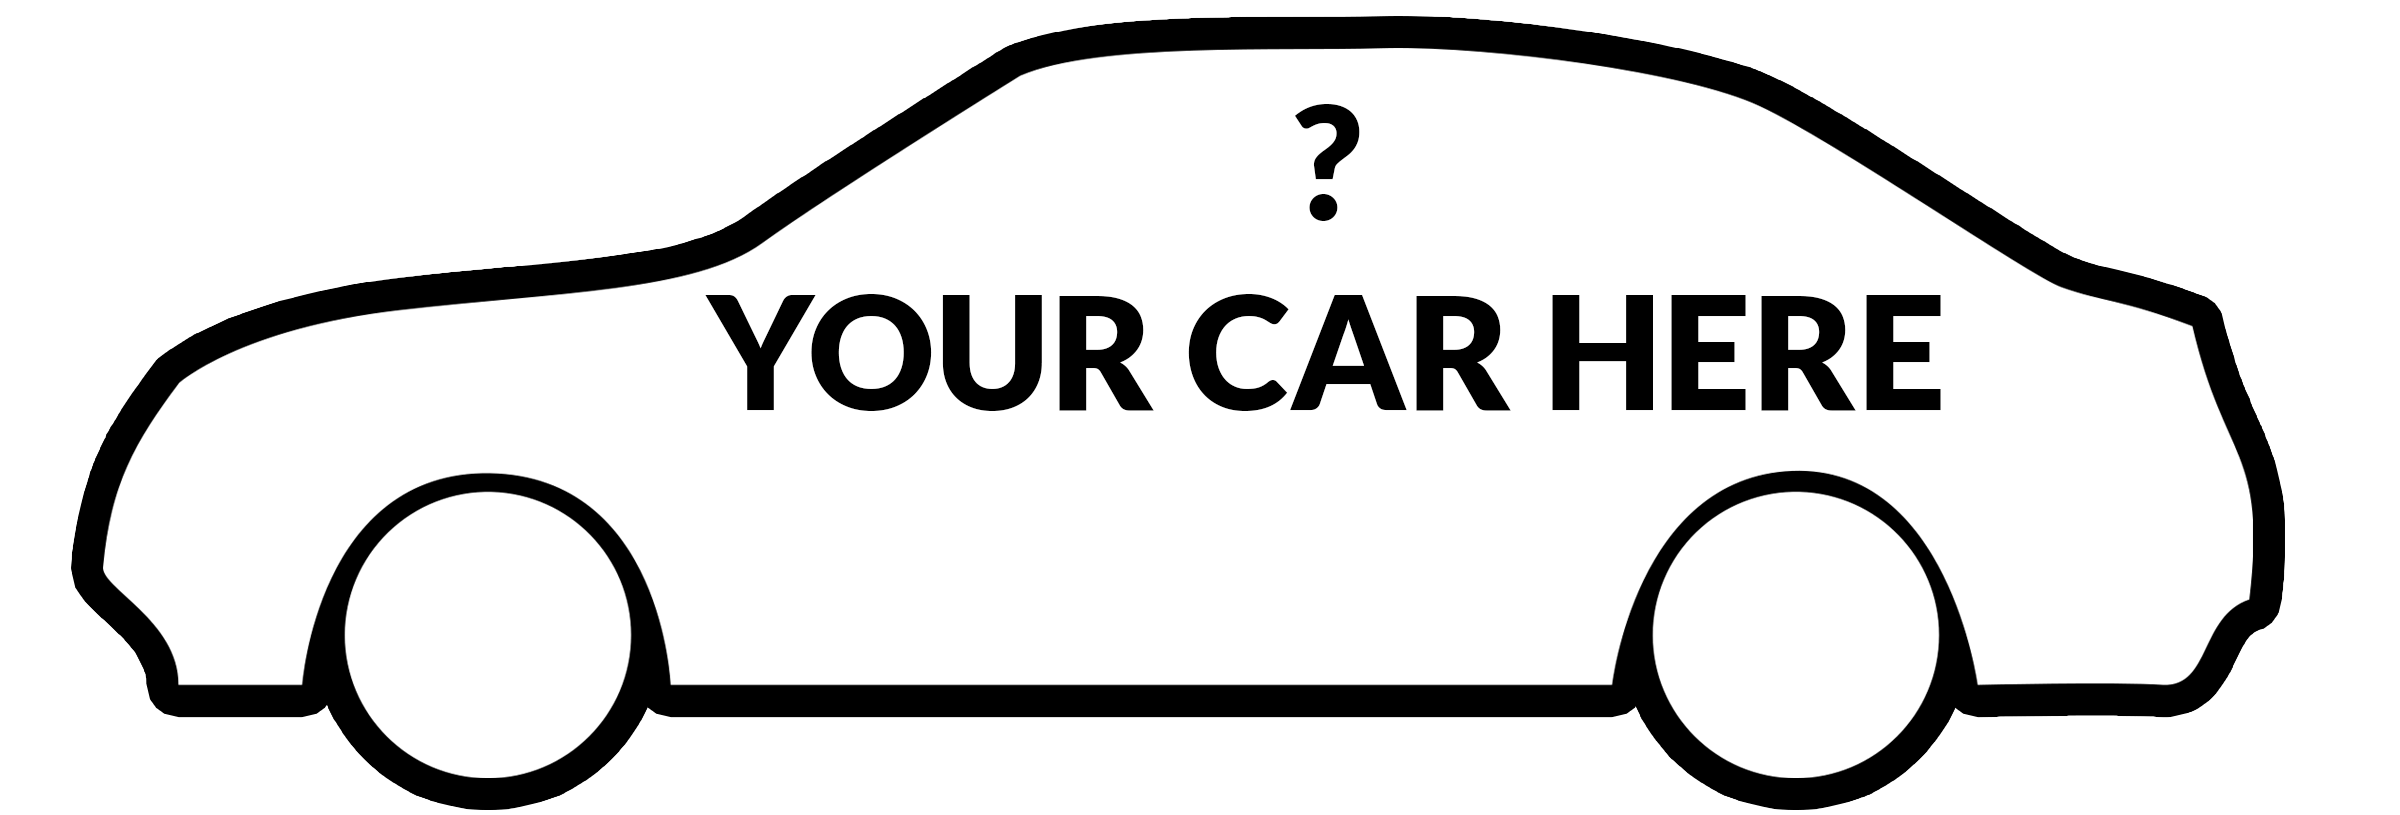 Free Car Profile Cliparts Download Free Clip Art Free